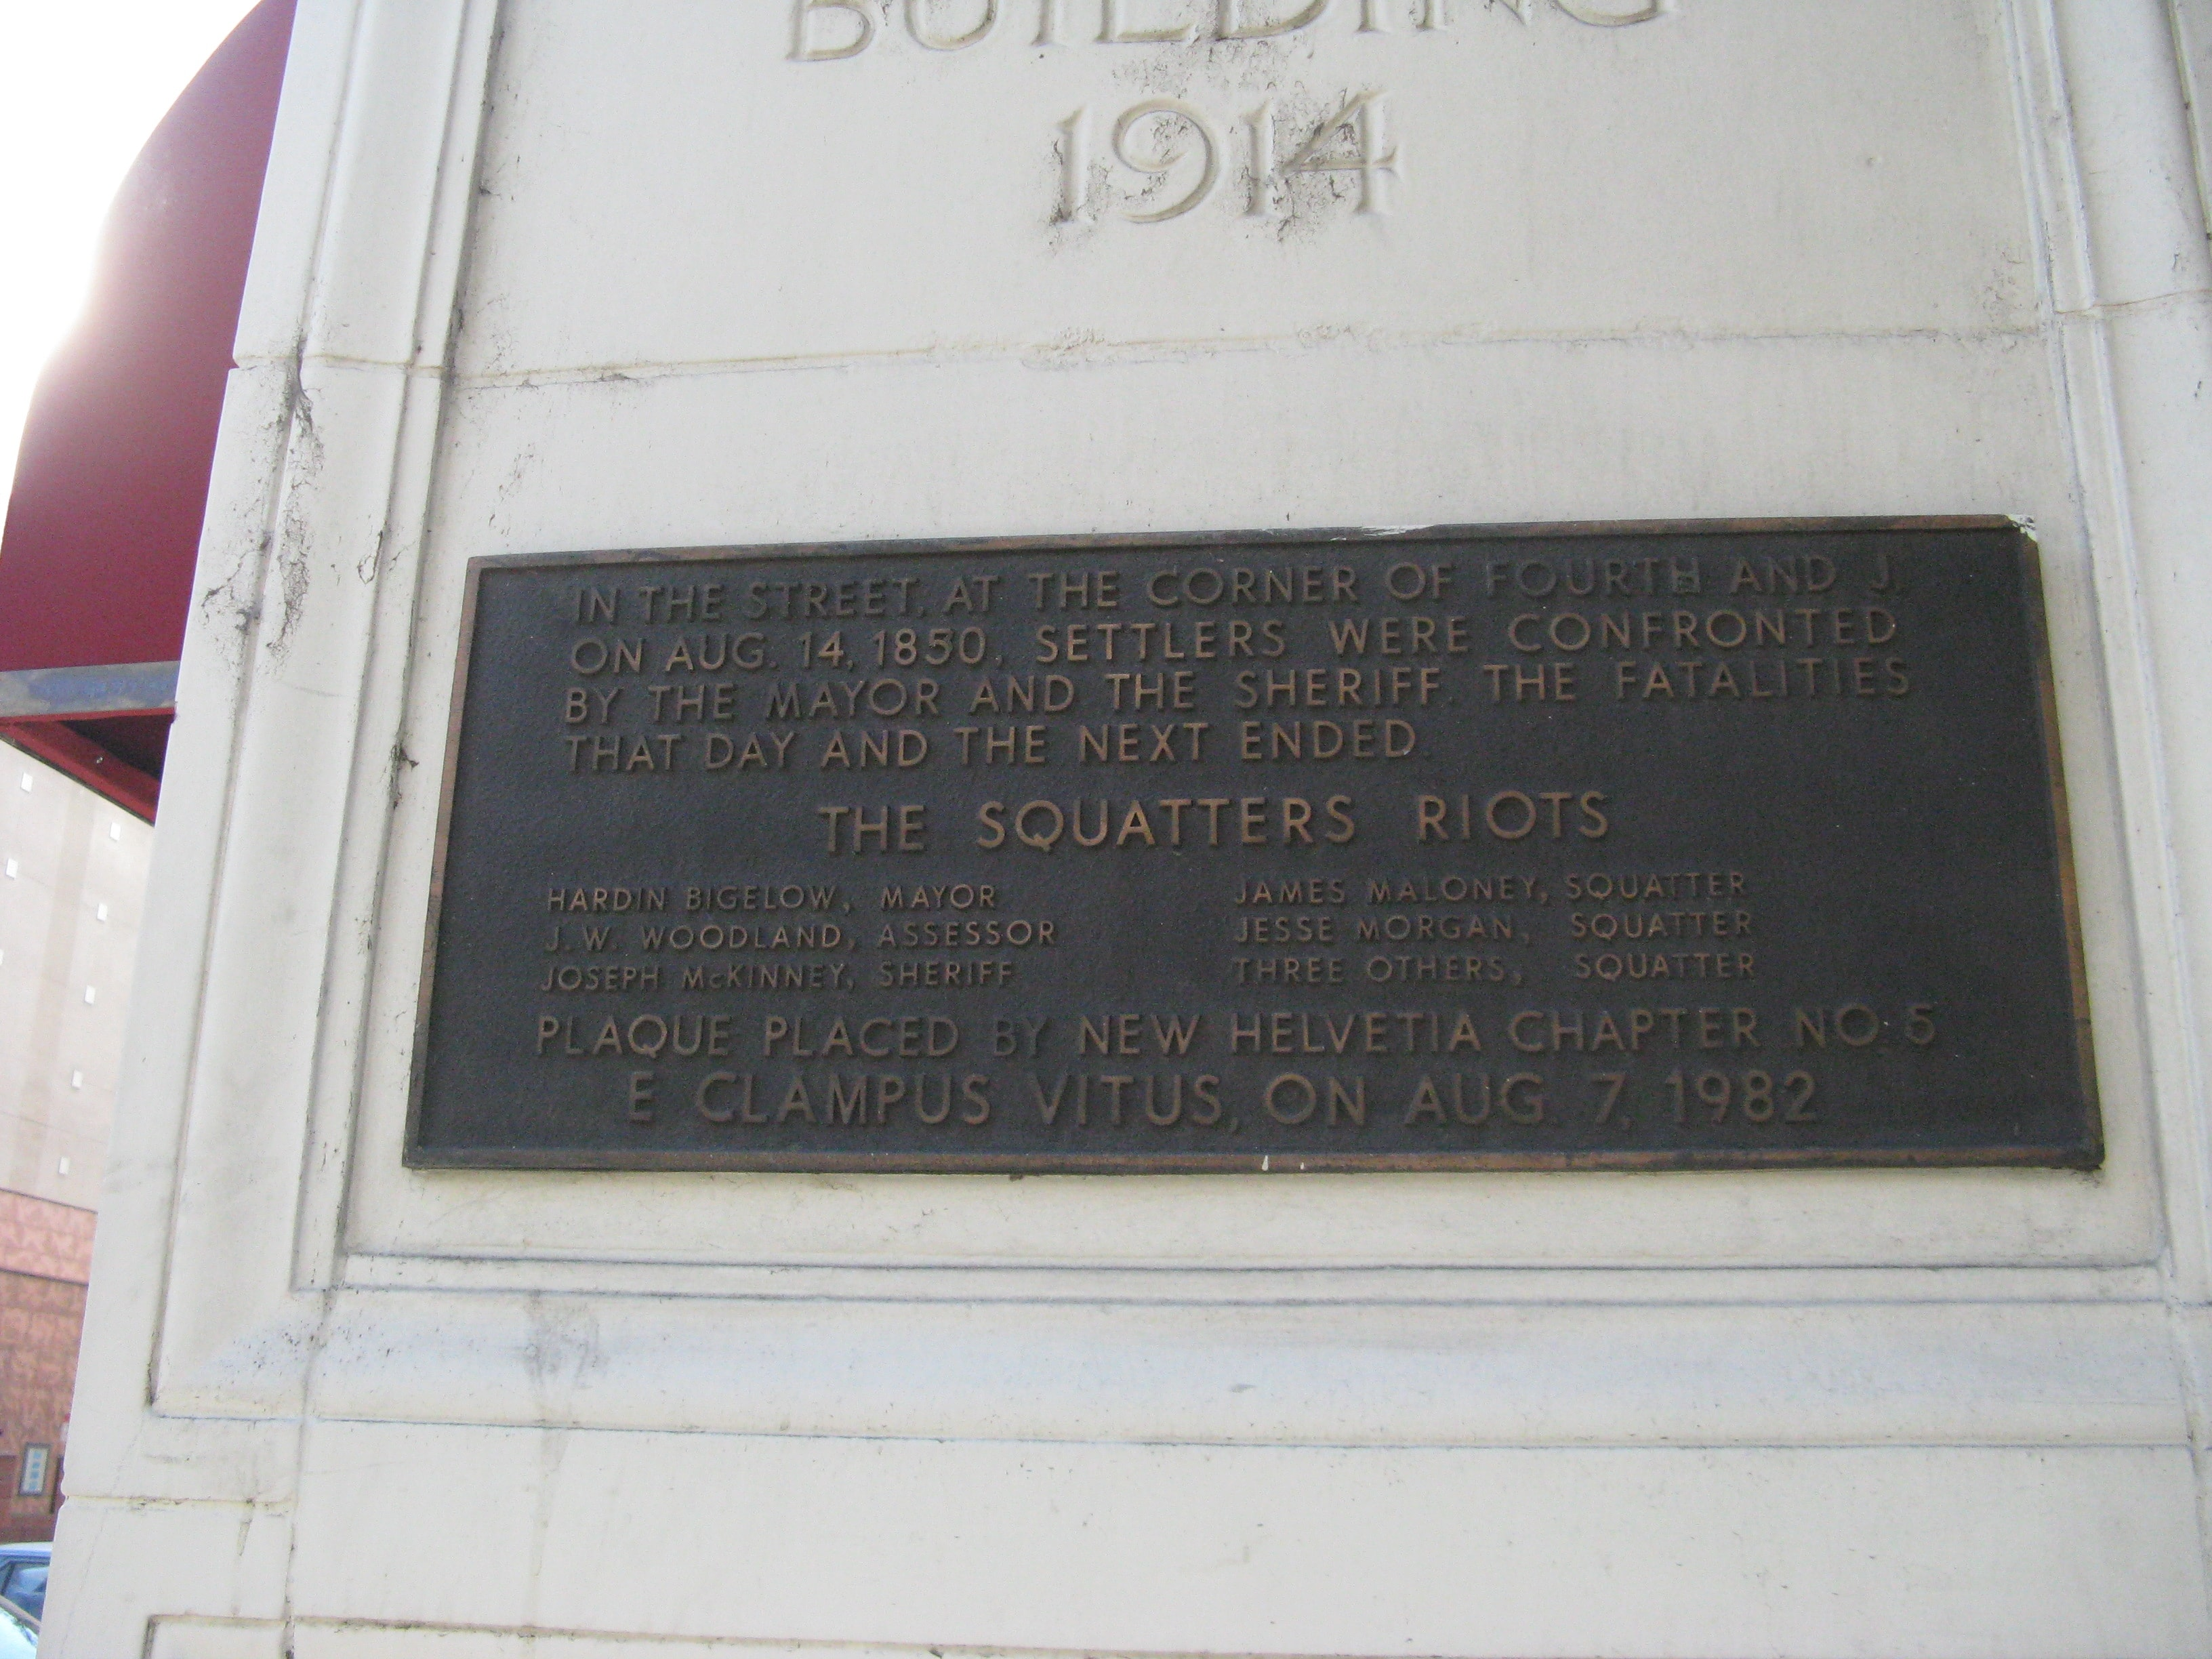 The 1982 commemorative plaque placed on the NE corner of the California Fruit Building, near where the line of squatters made their stand. The listed dead did not all perish in this gunfight (photo by Syd Whittle, hmdb.org).